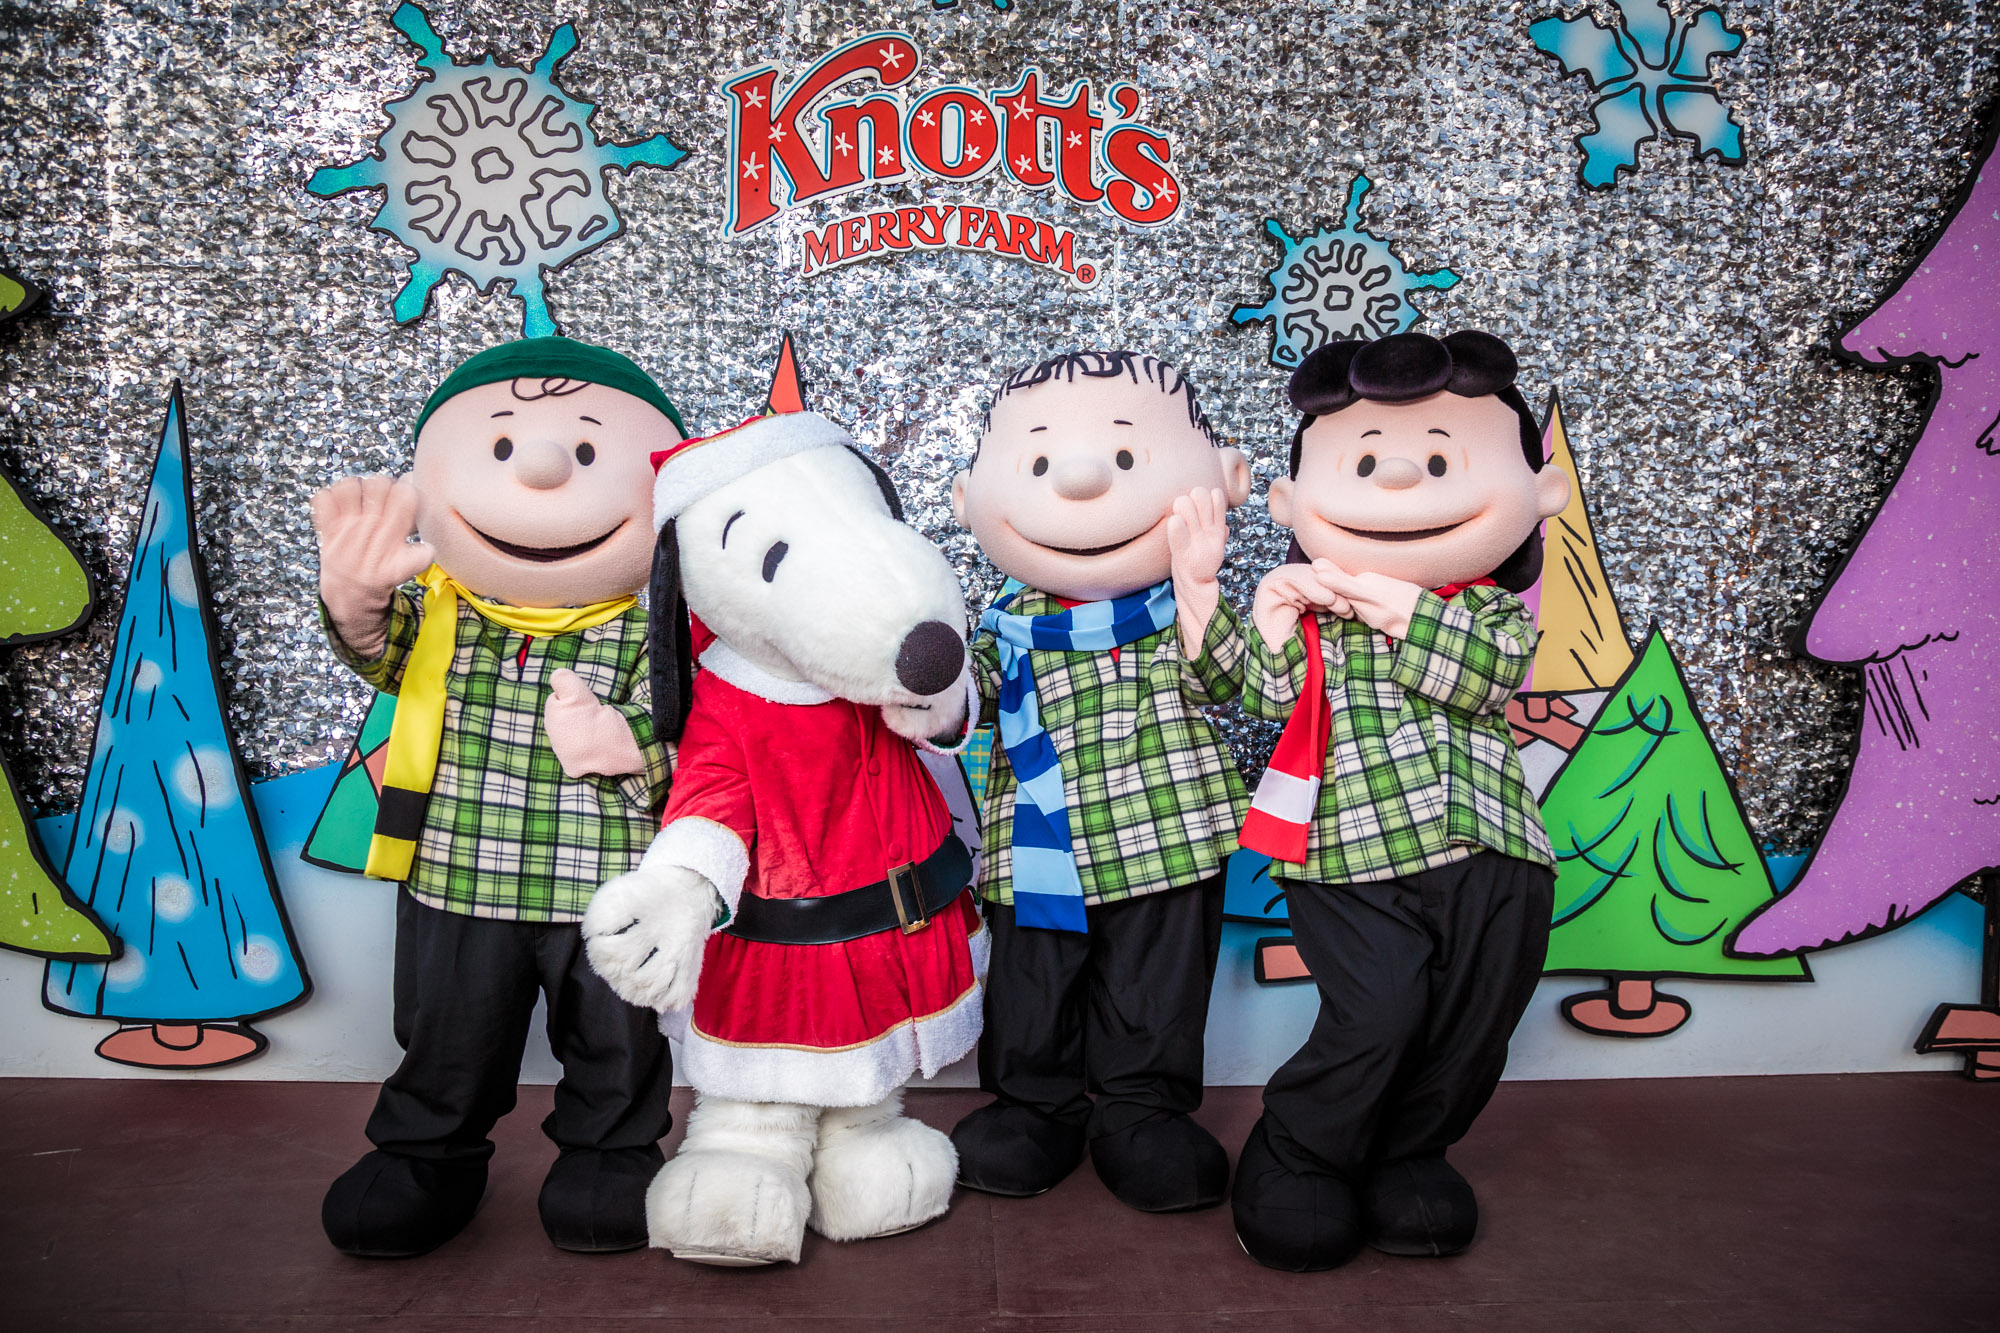 #Knotts #MerryFarm #Holidays #HolidayFun #Travel #ad